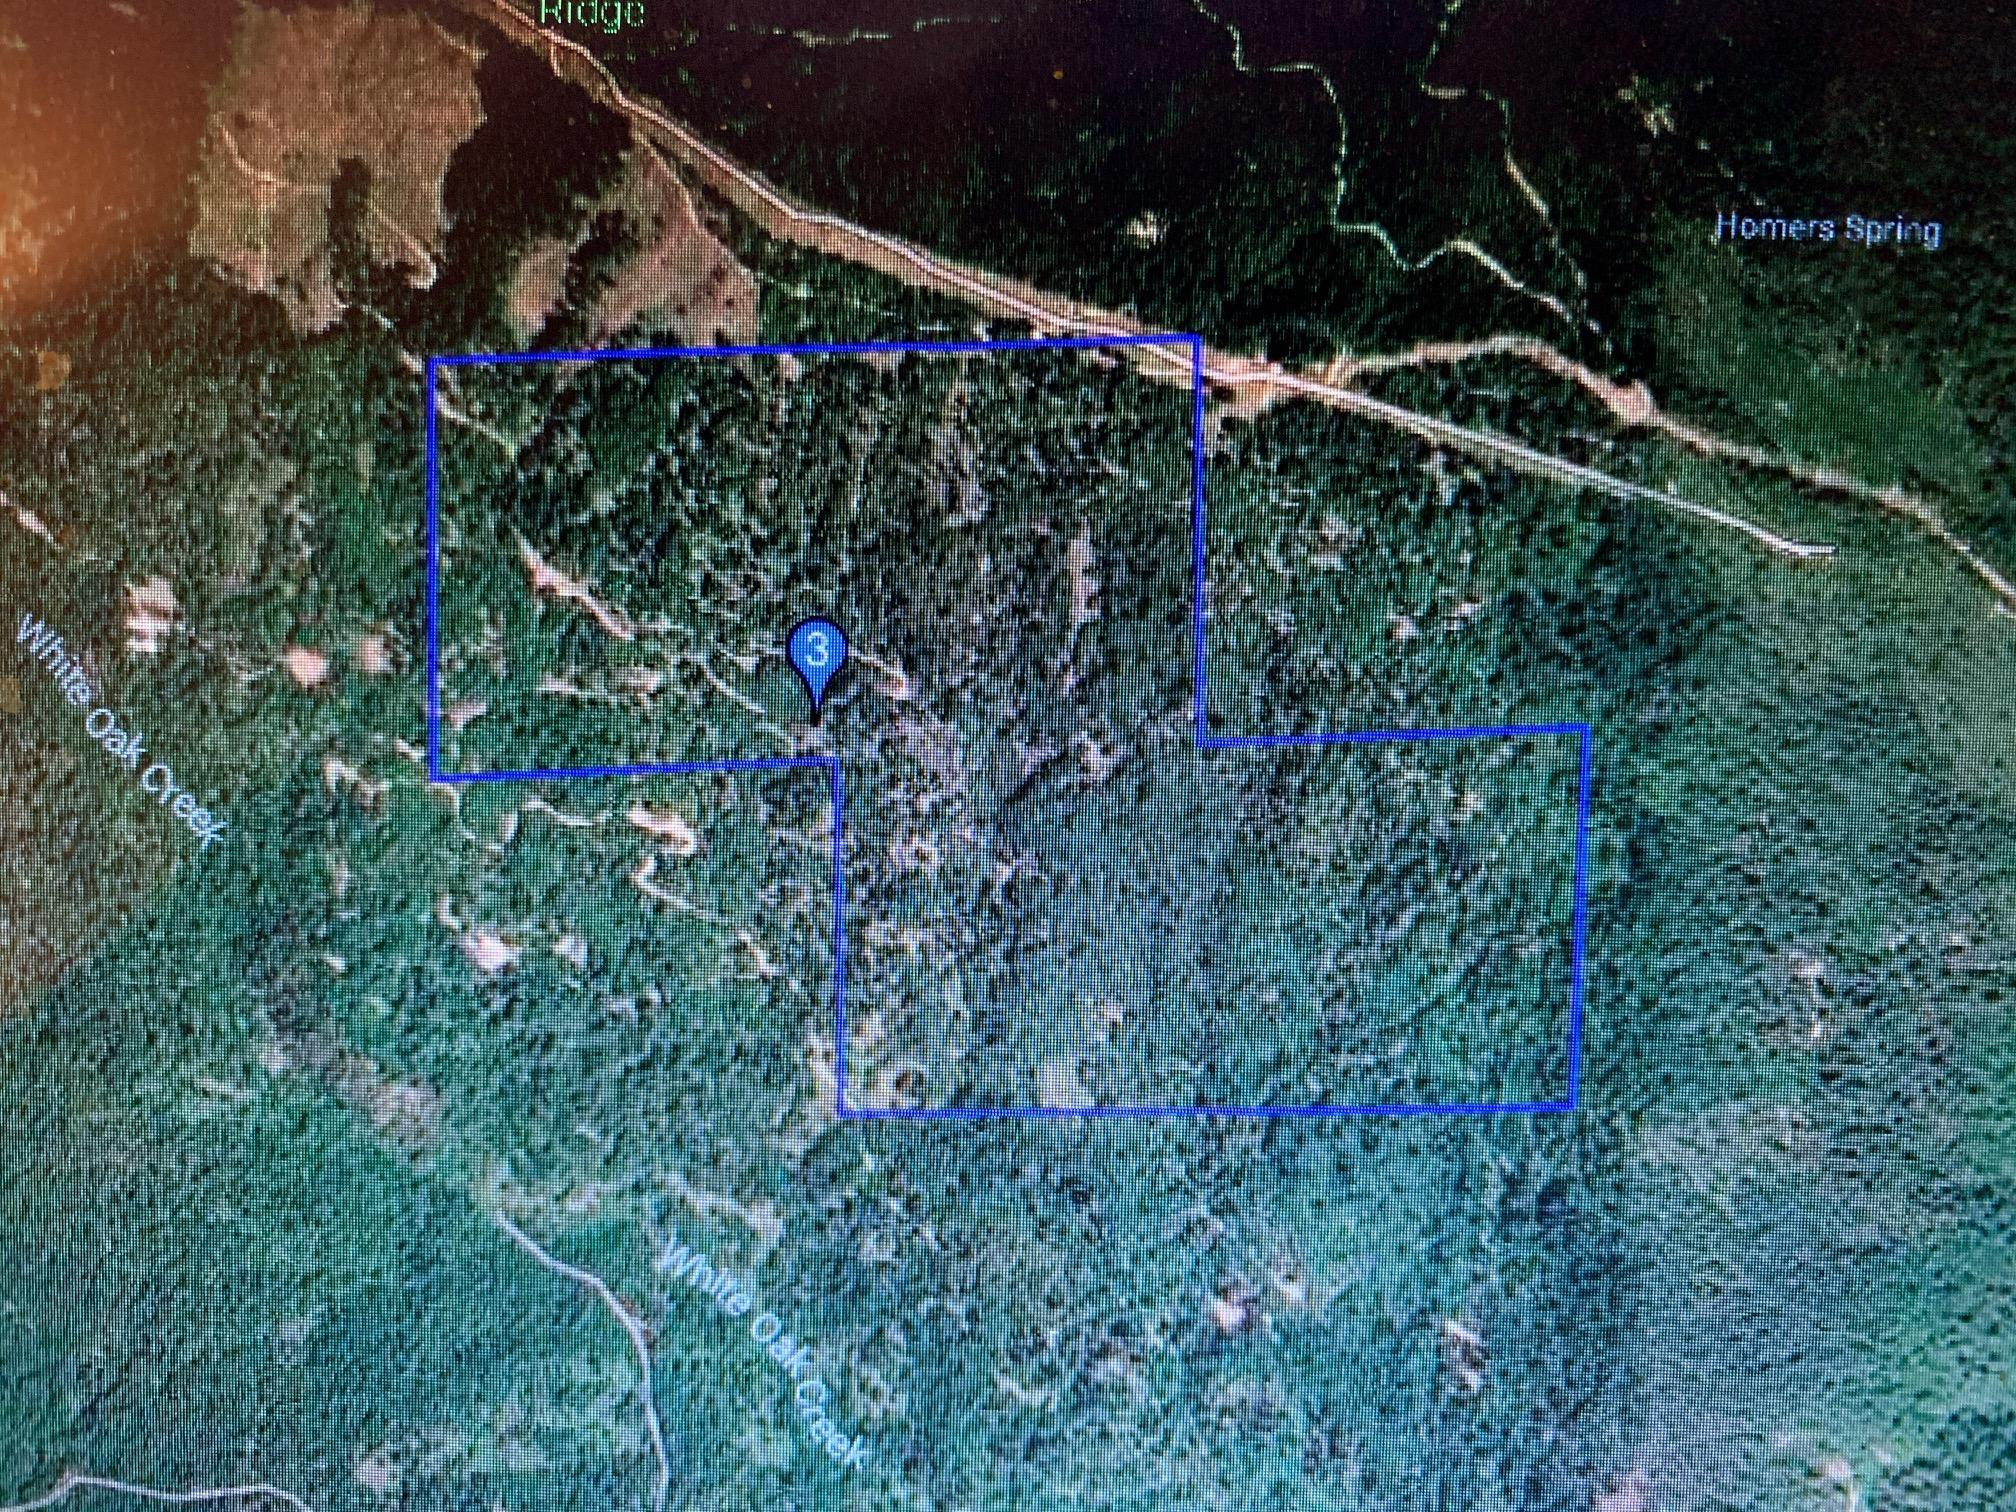 111 Cow Creek Road Blue Lake Ca Mls 252460 Welcome To Your